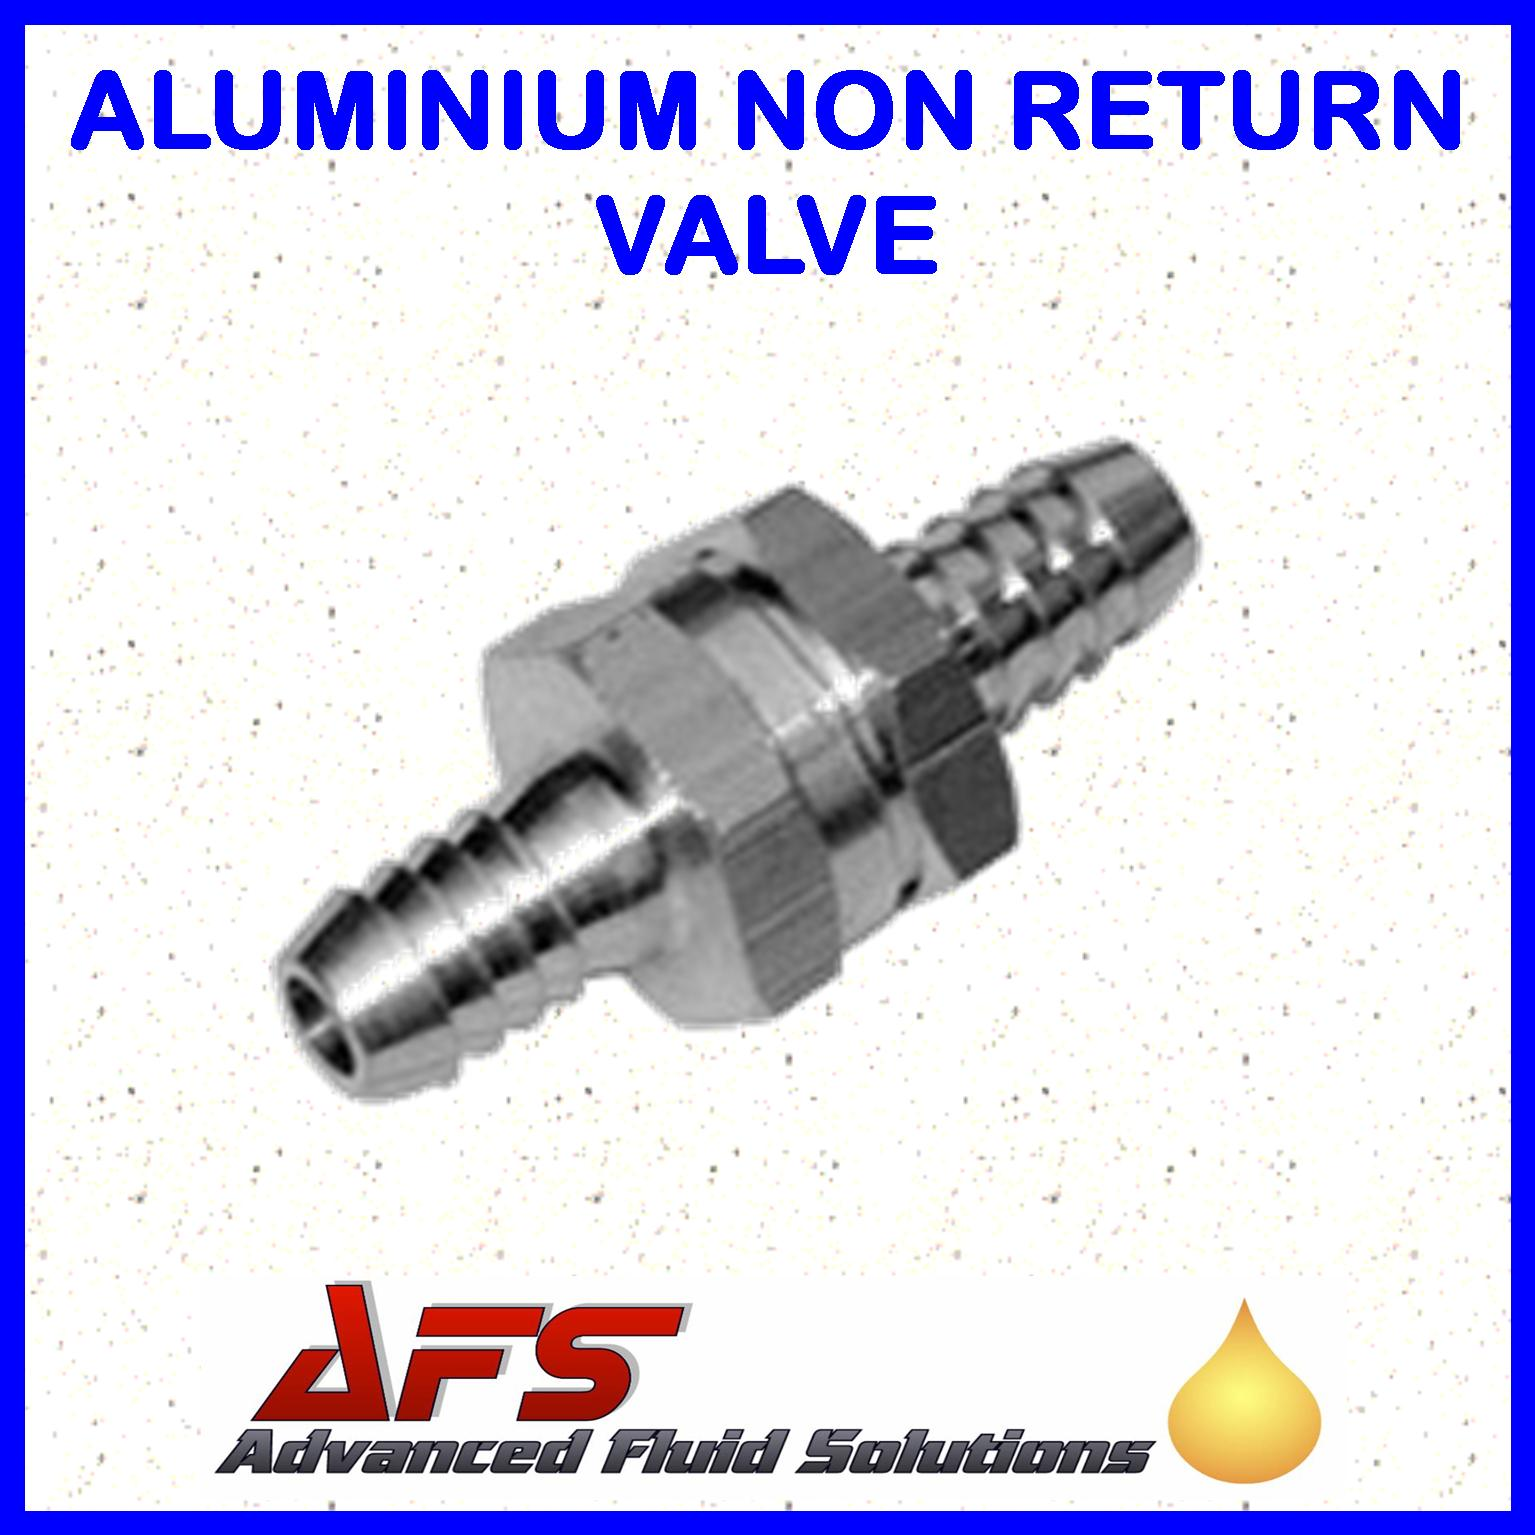 8mm 5 16 Straight Non Return Valve Aluminium - Fuel Check Valve Air